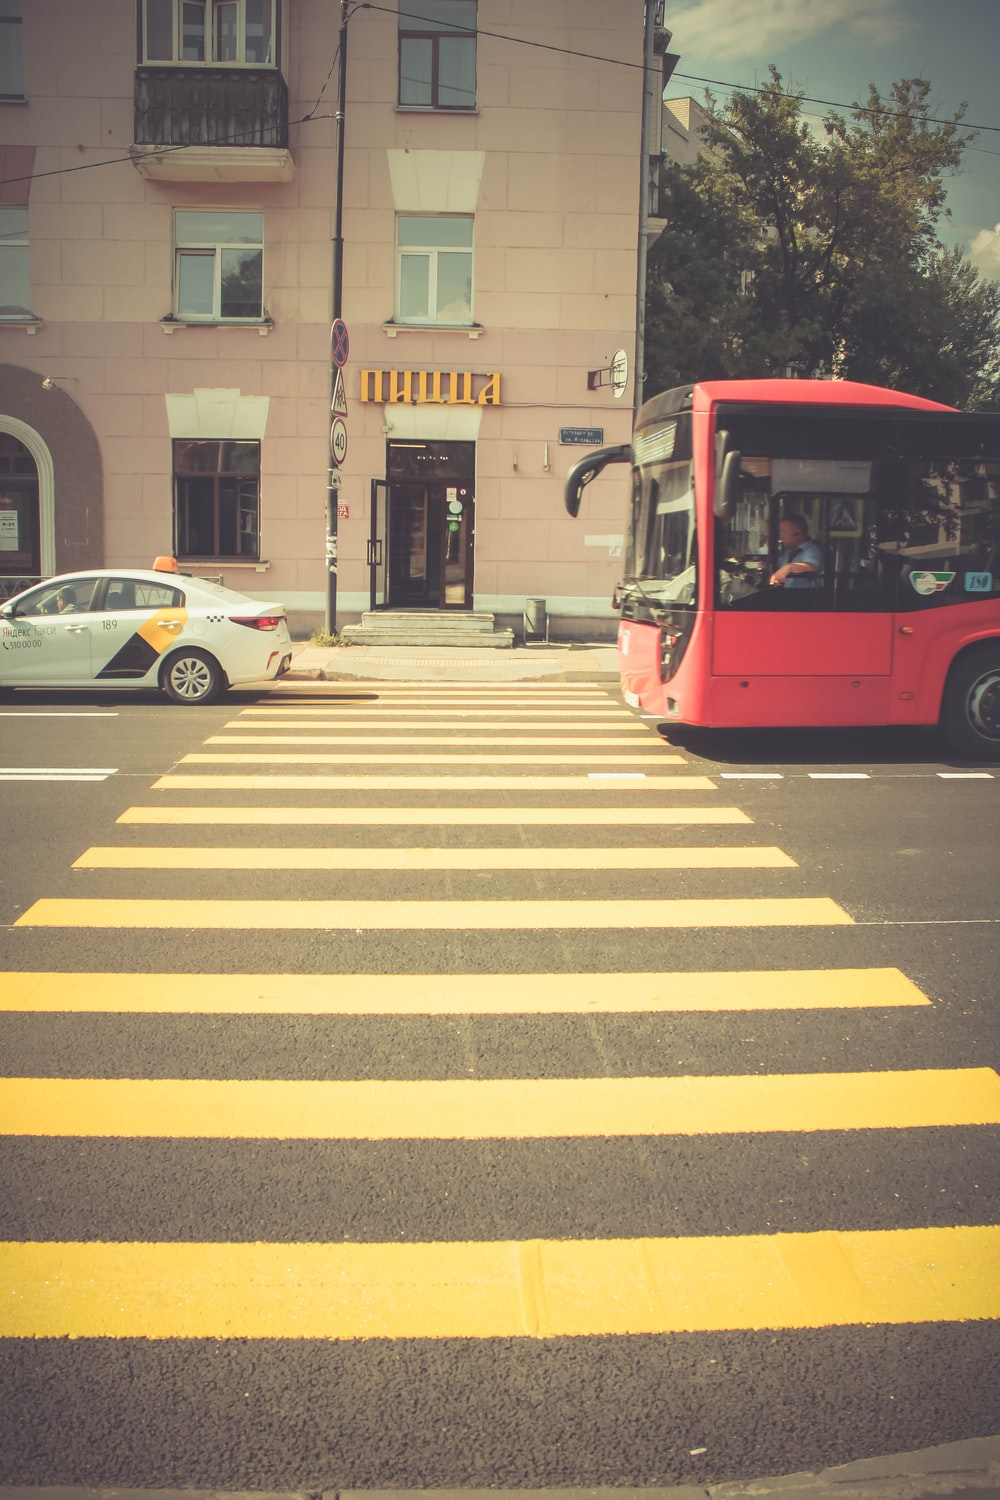 red bus near pedestrian lane